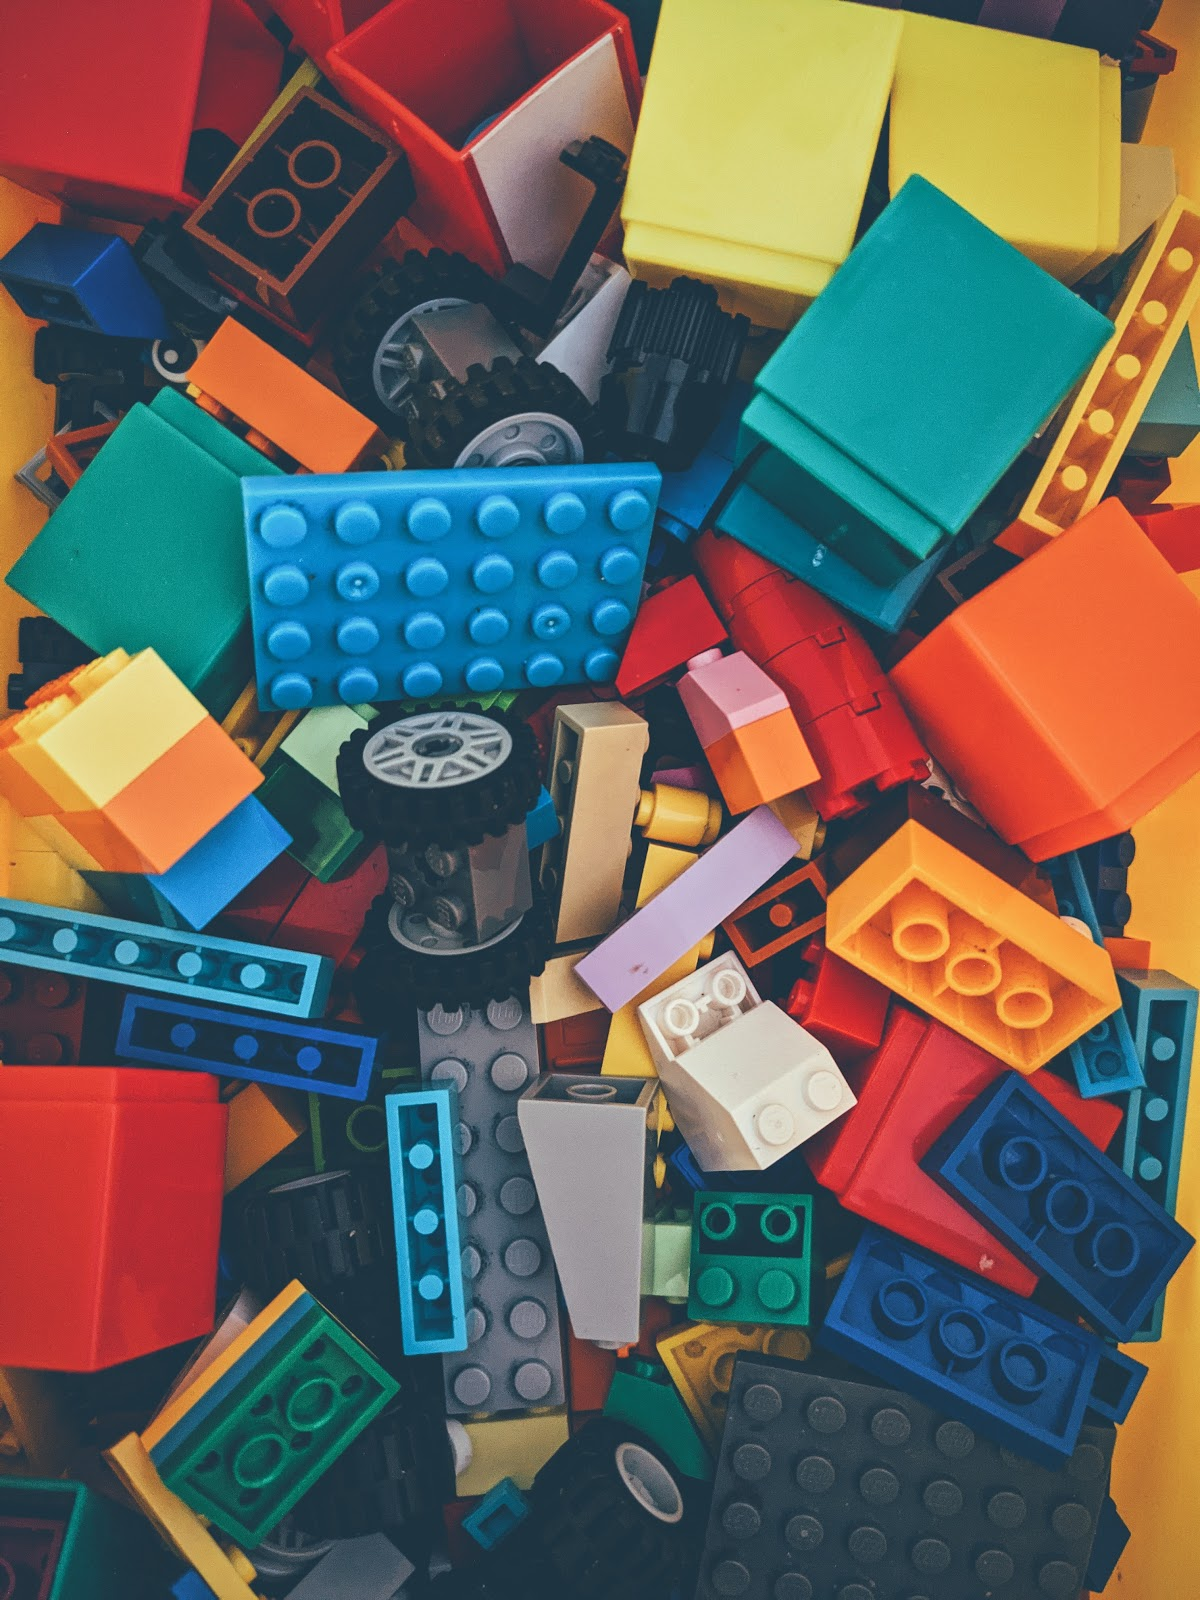 Lego-like building bricks, as well as wheels and axles of many colors lay in a jumbled pile.